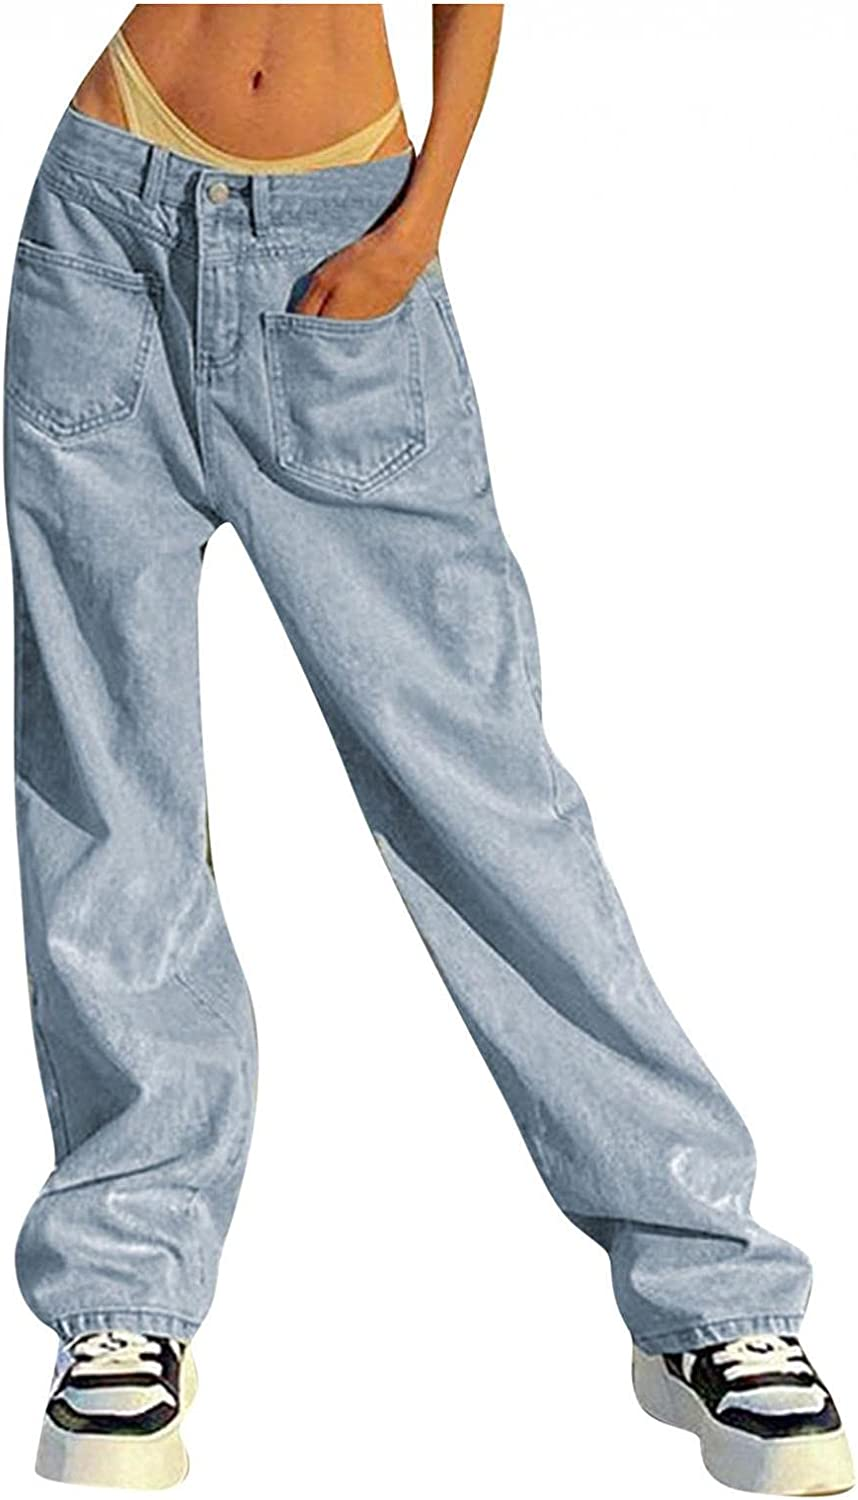 Women's Baggy Straight Jeans Low Waisted Pocket Stretch Wide Leg Denim Pants Casual Distressed Vintage Jeans Trousers